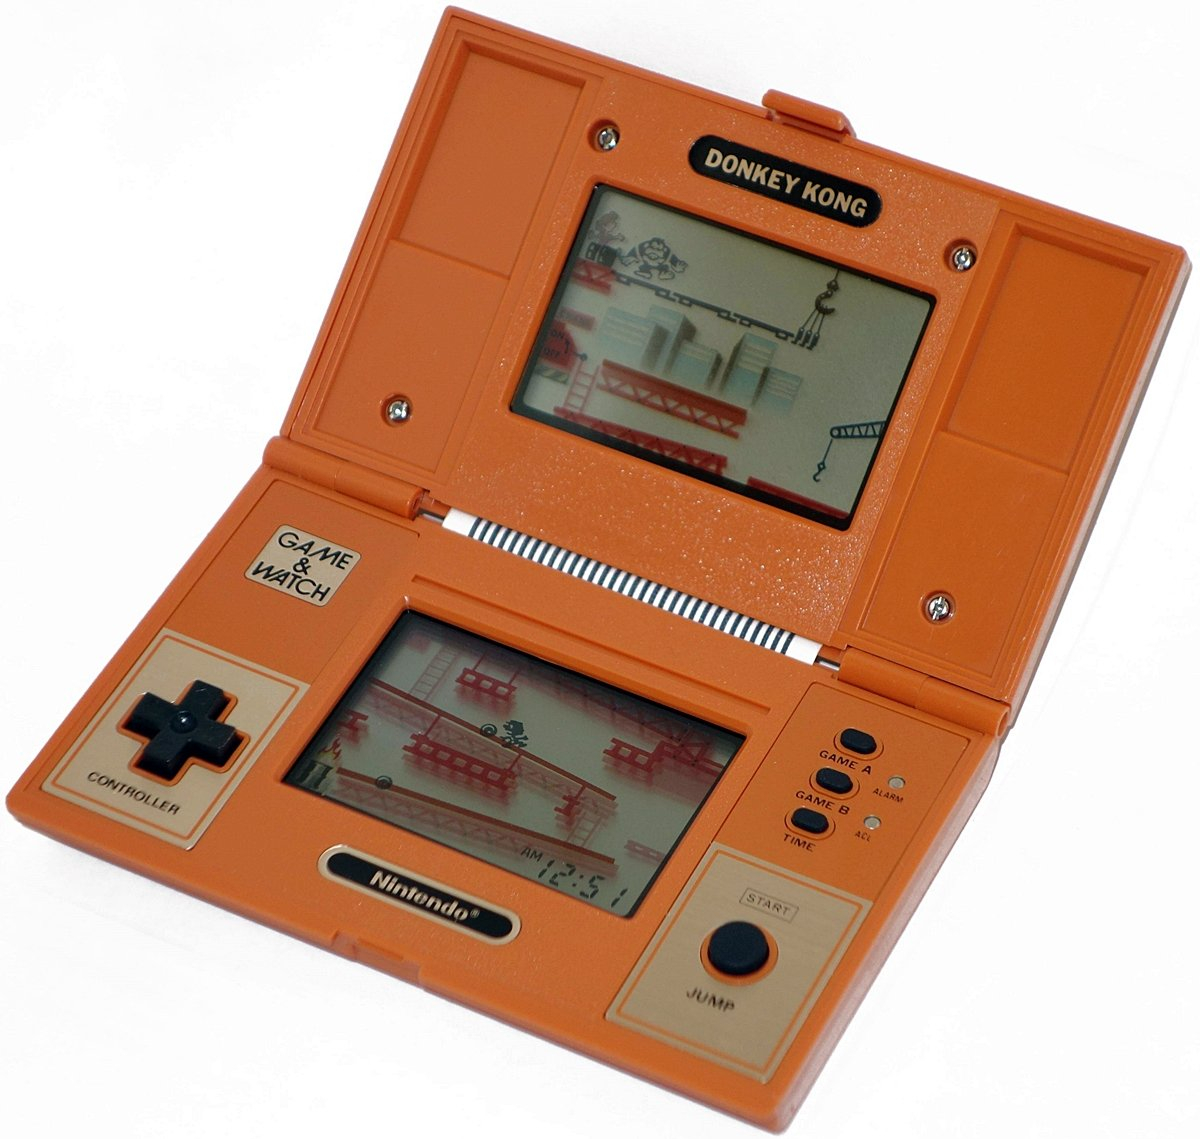 INTRO1 4 12 Of The Best Handheld Electronic Games From The 1980s